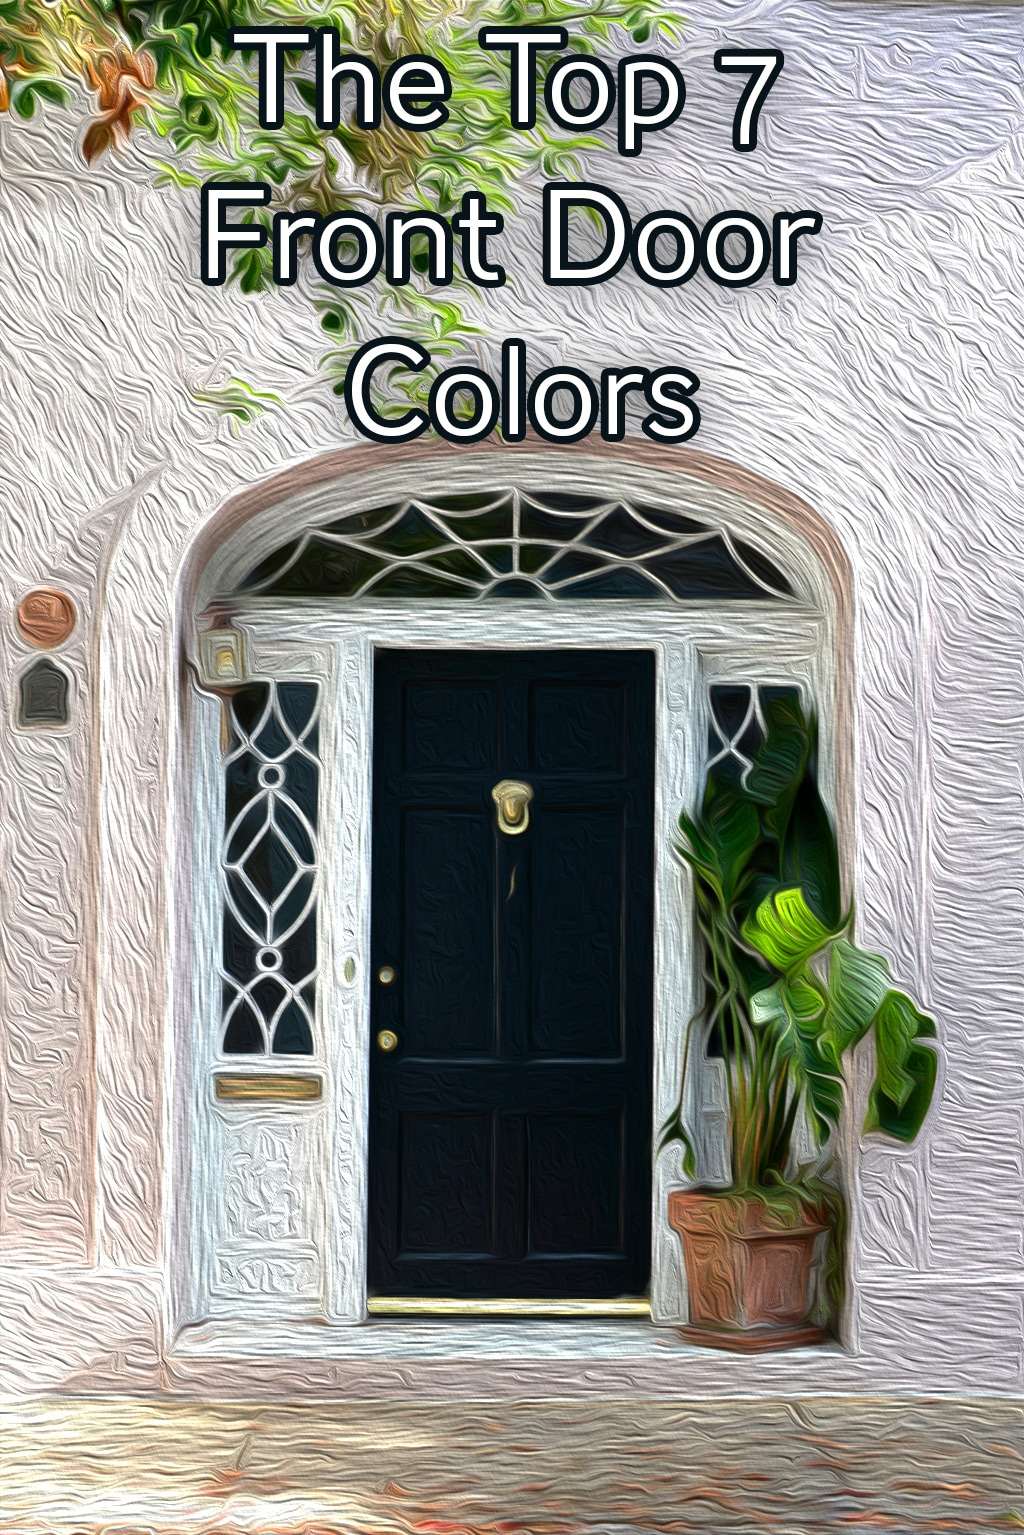 Color Of the Gate In House Luxury the 7 Best Front Door Colors for 2018